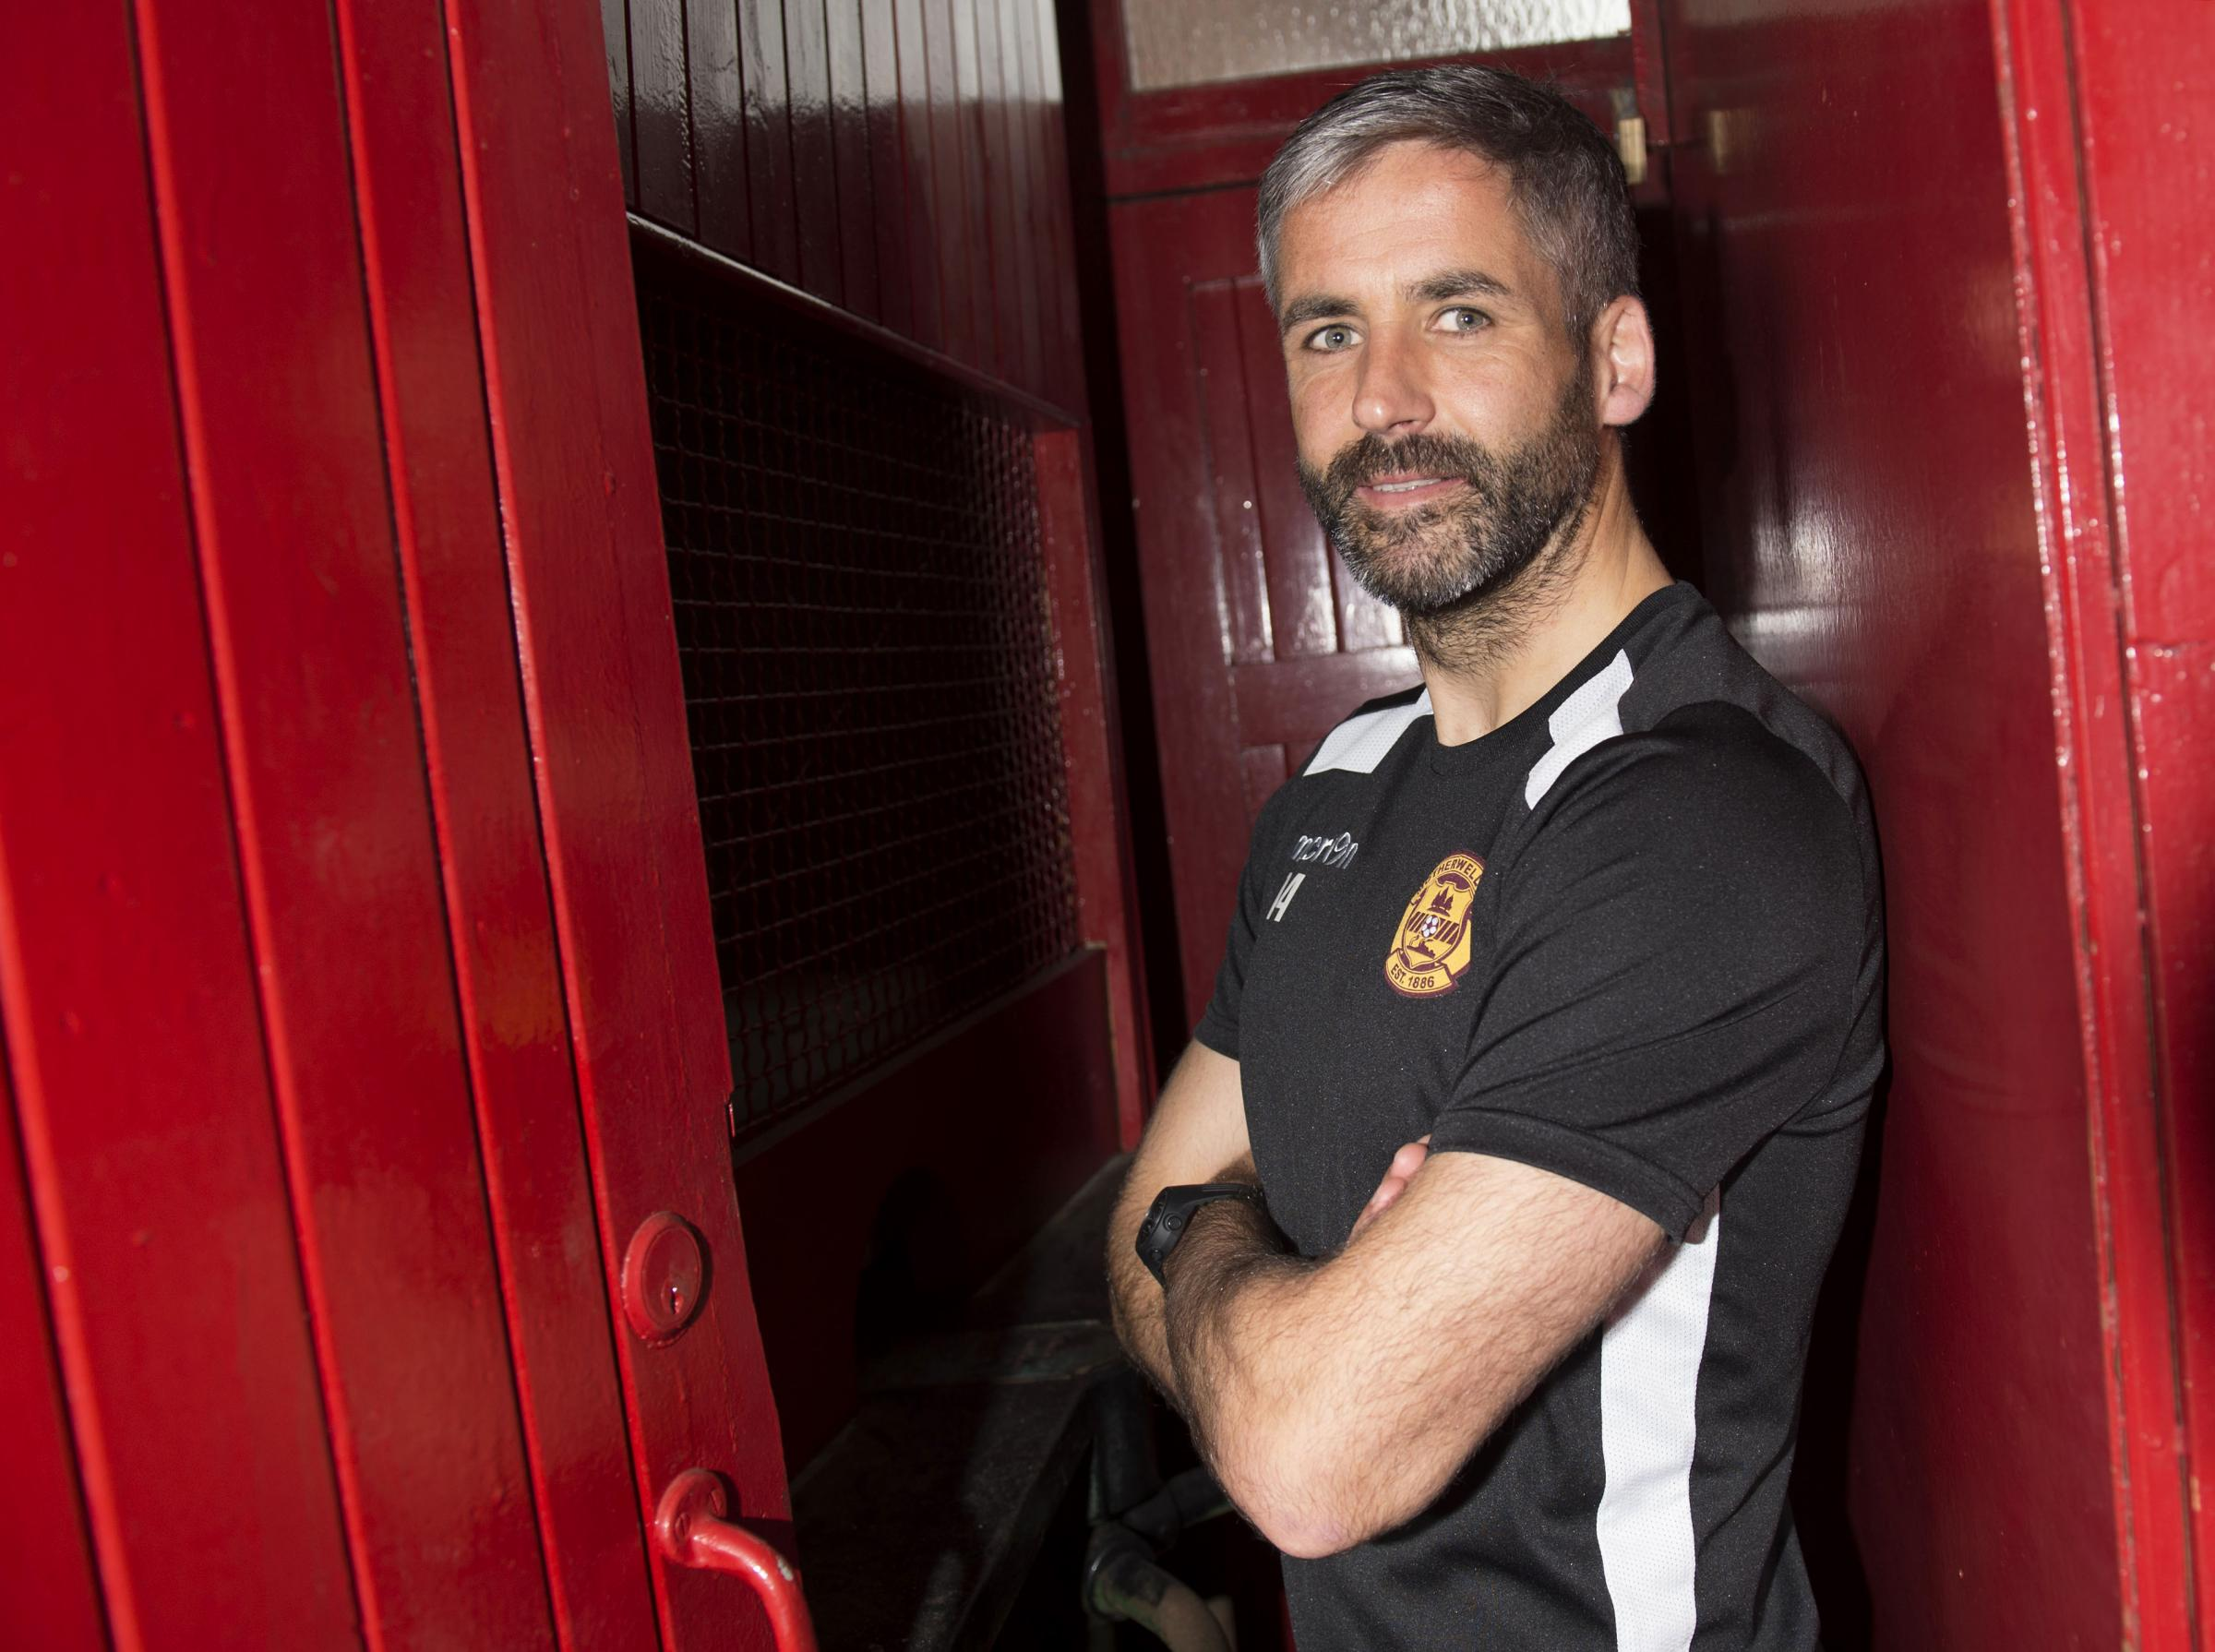 28/09/16  .  FIR PARK STADIUM - MOTHERWELL  .  Motherwell's Keith Lasley speaks to the media.